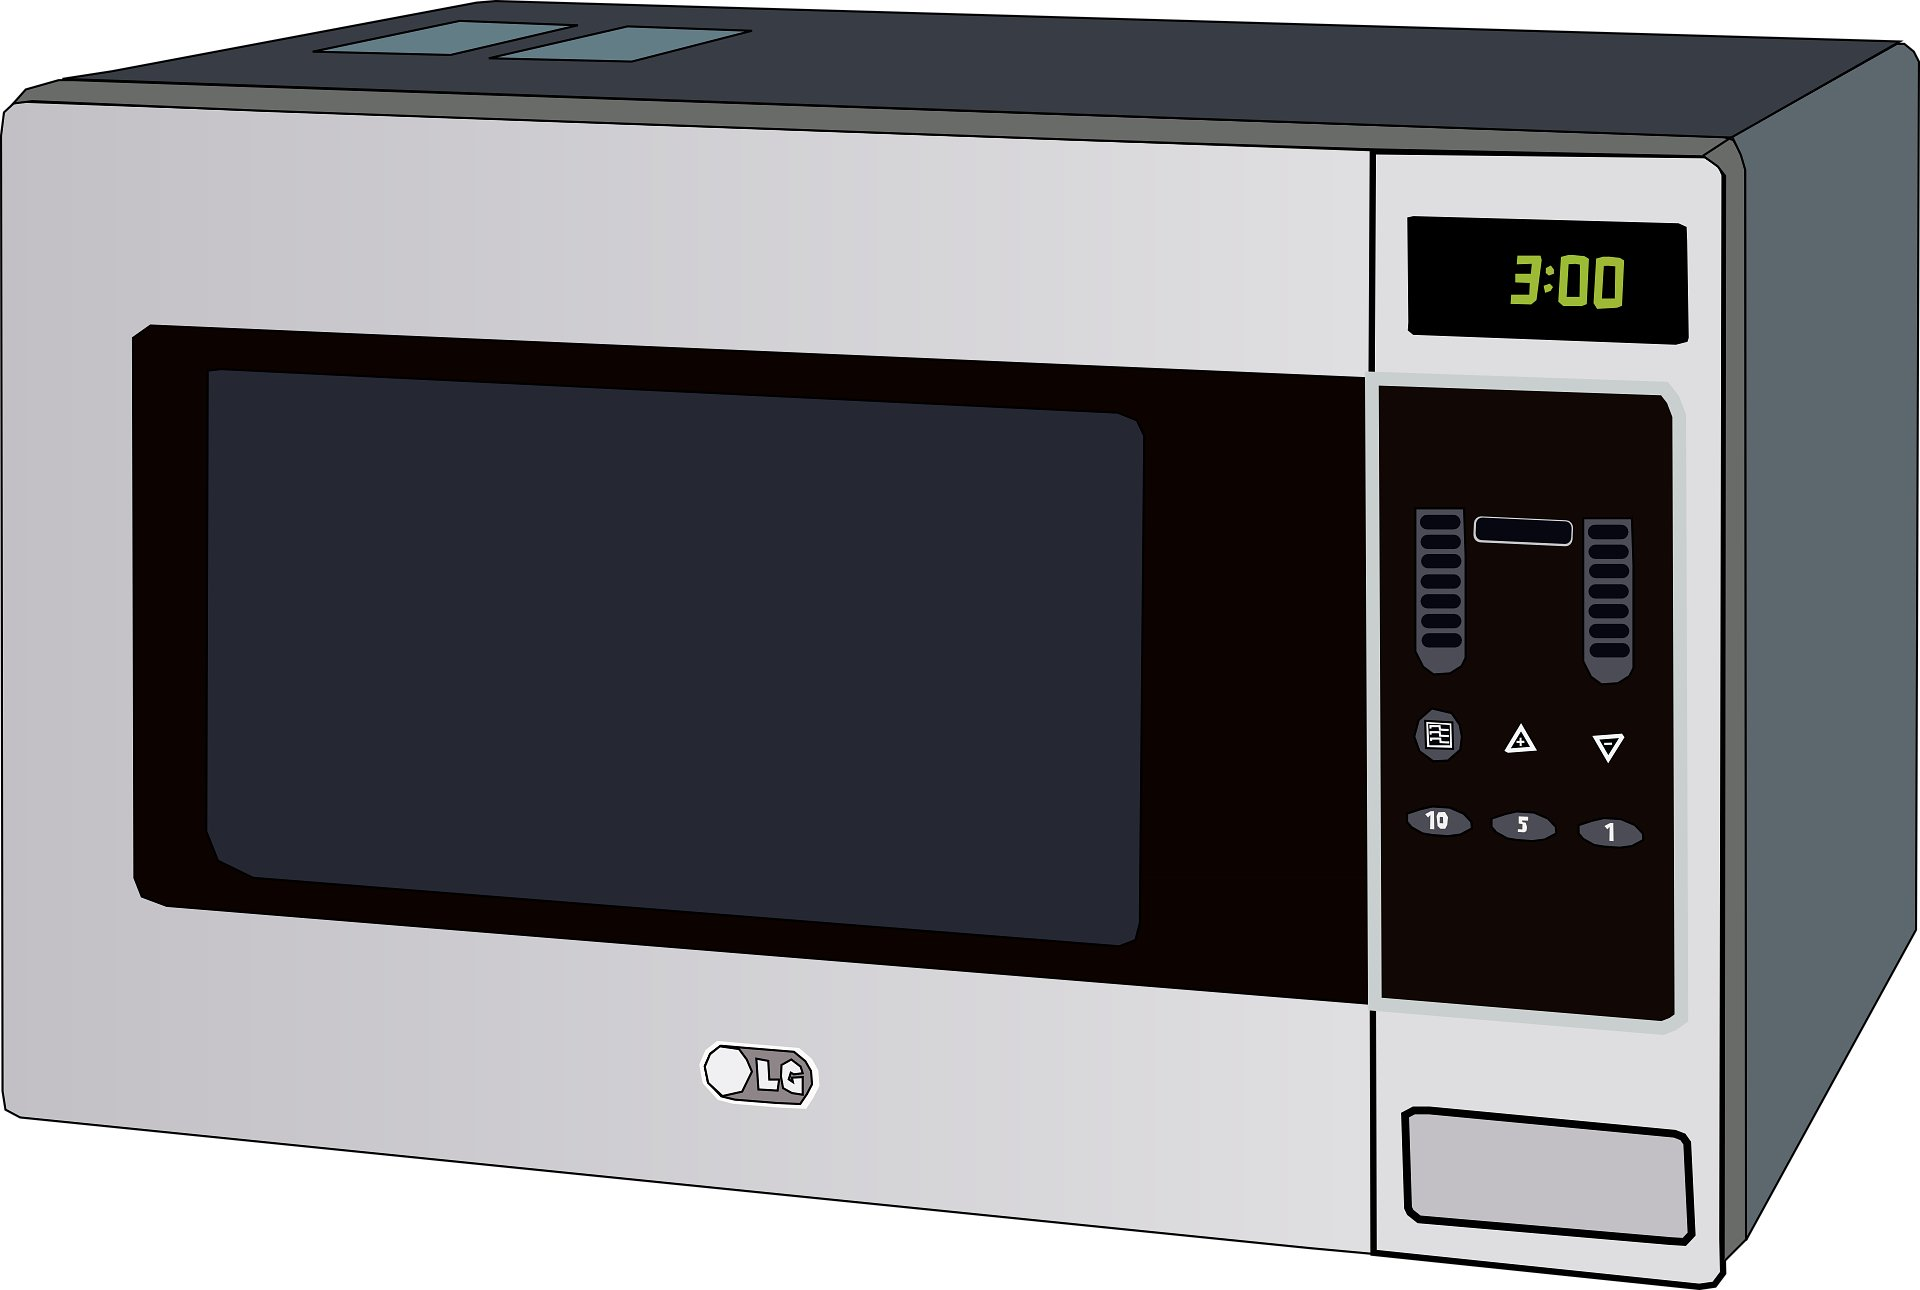 microwaves could be as bad for the